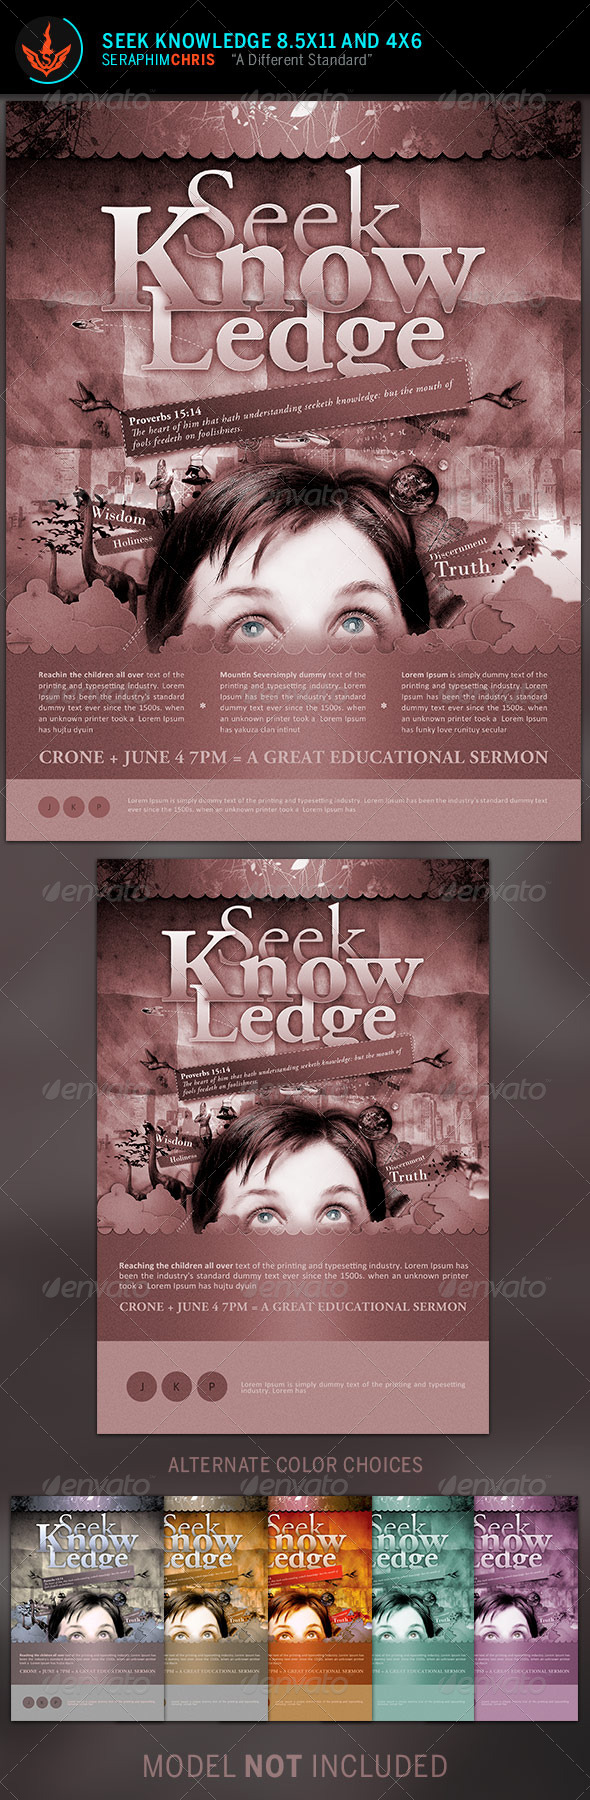 Seek Knowledge Full Page Flyer Template - Church Flyers